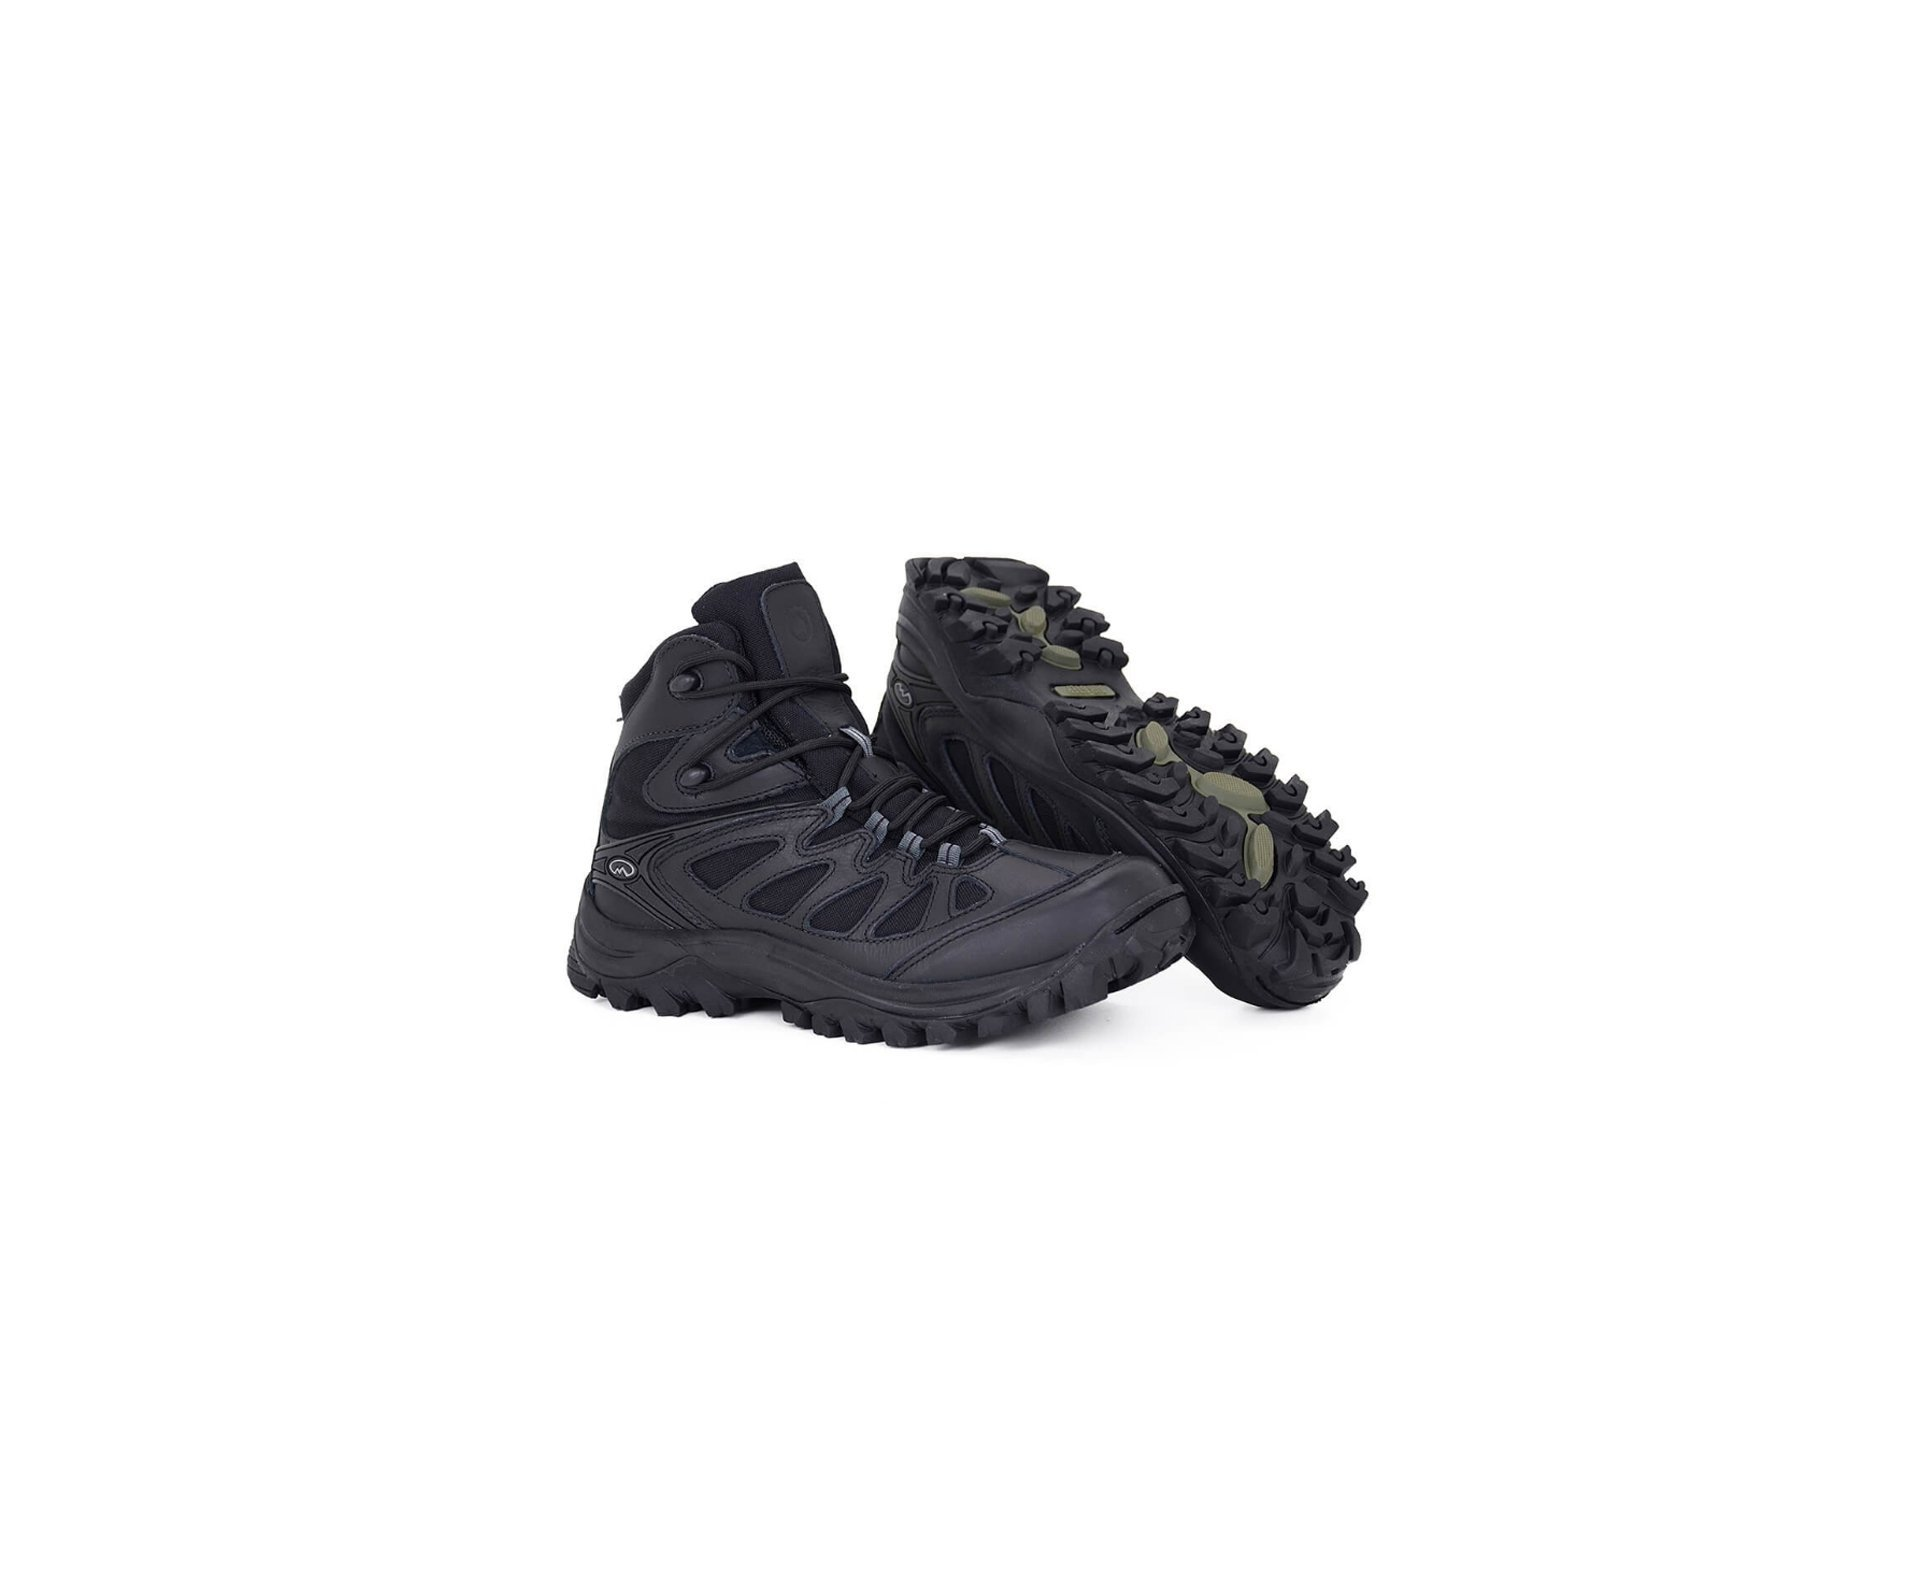 Bota Tática Trekking Hiking Airstep Boot  5700-1 Black